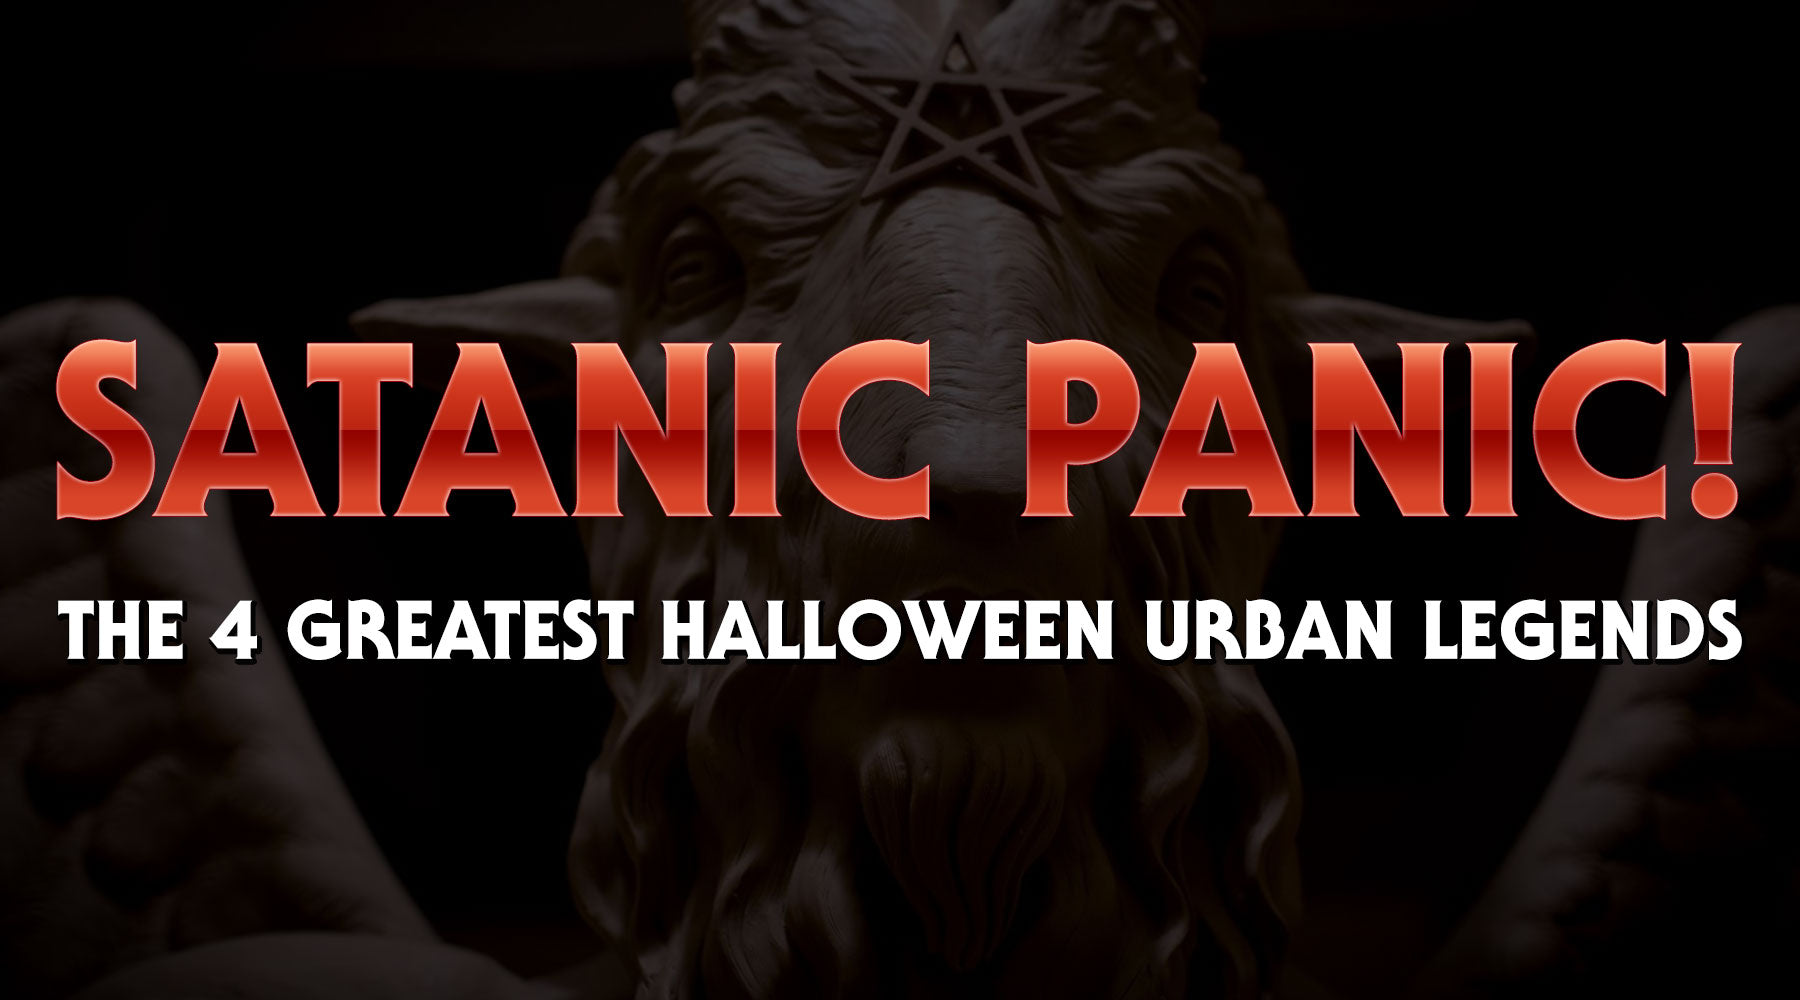 Satanic Panic! The 4 Greatest Halloween Urban Legends